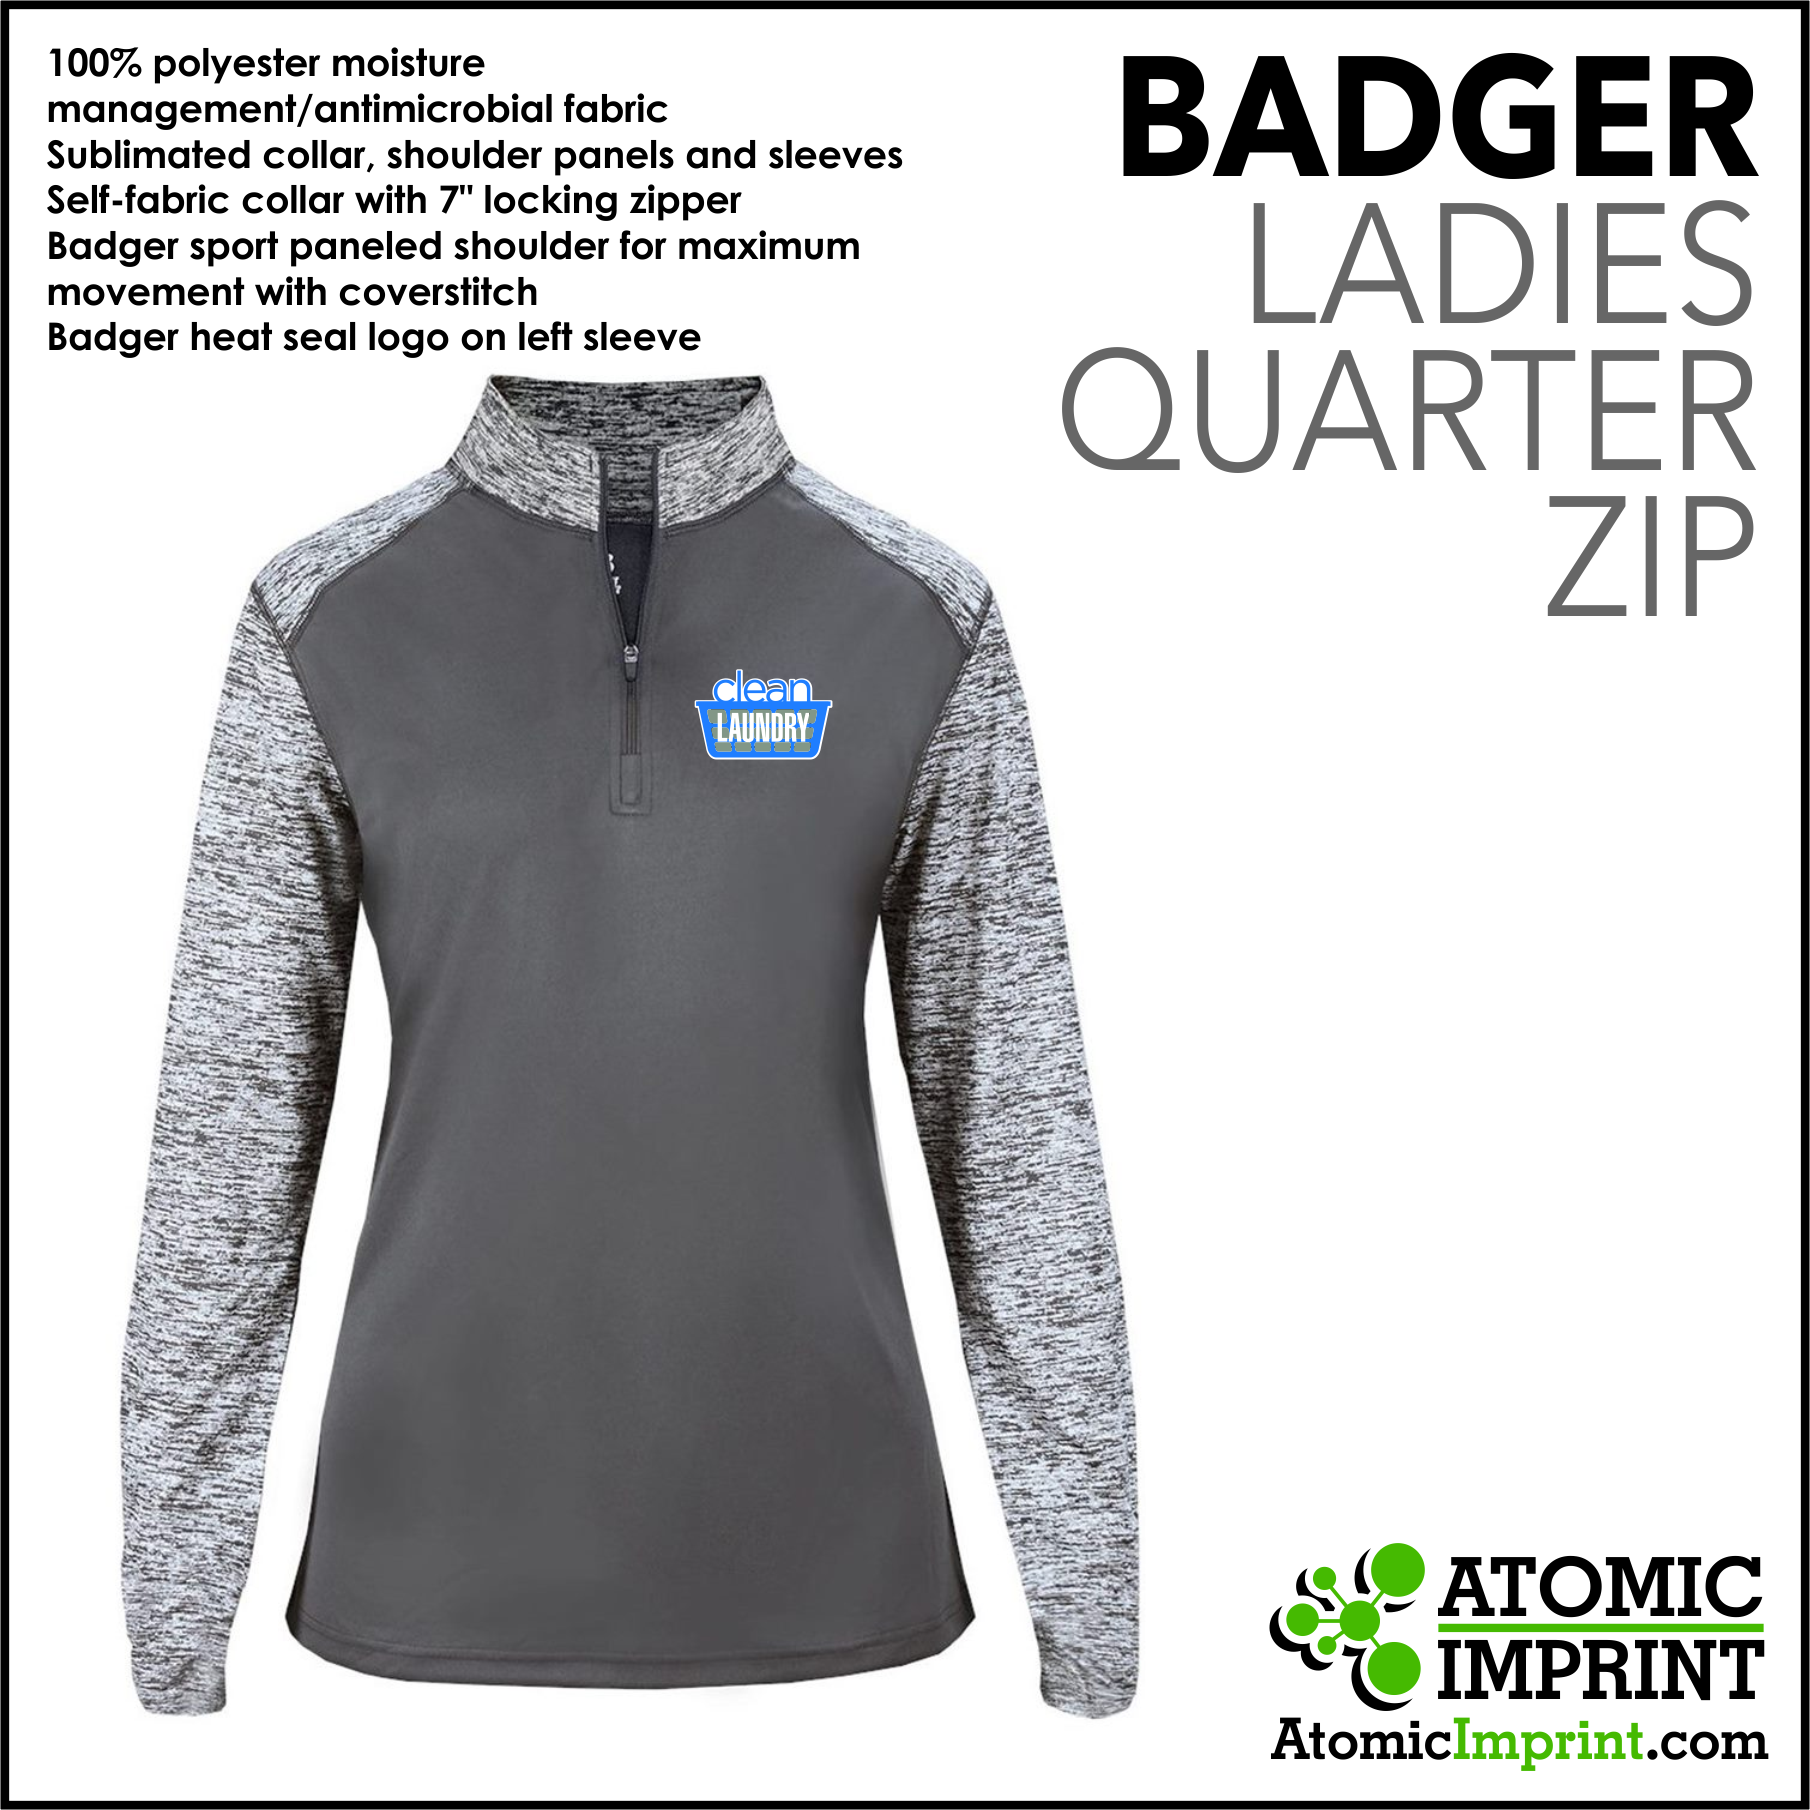 Clean Laundry Badger Quarter-Zip Ladies Jacket